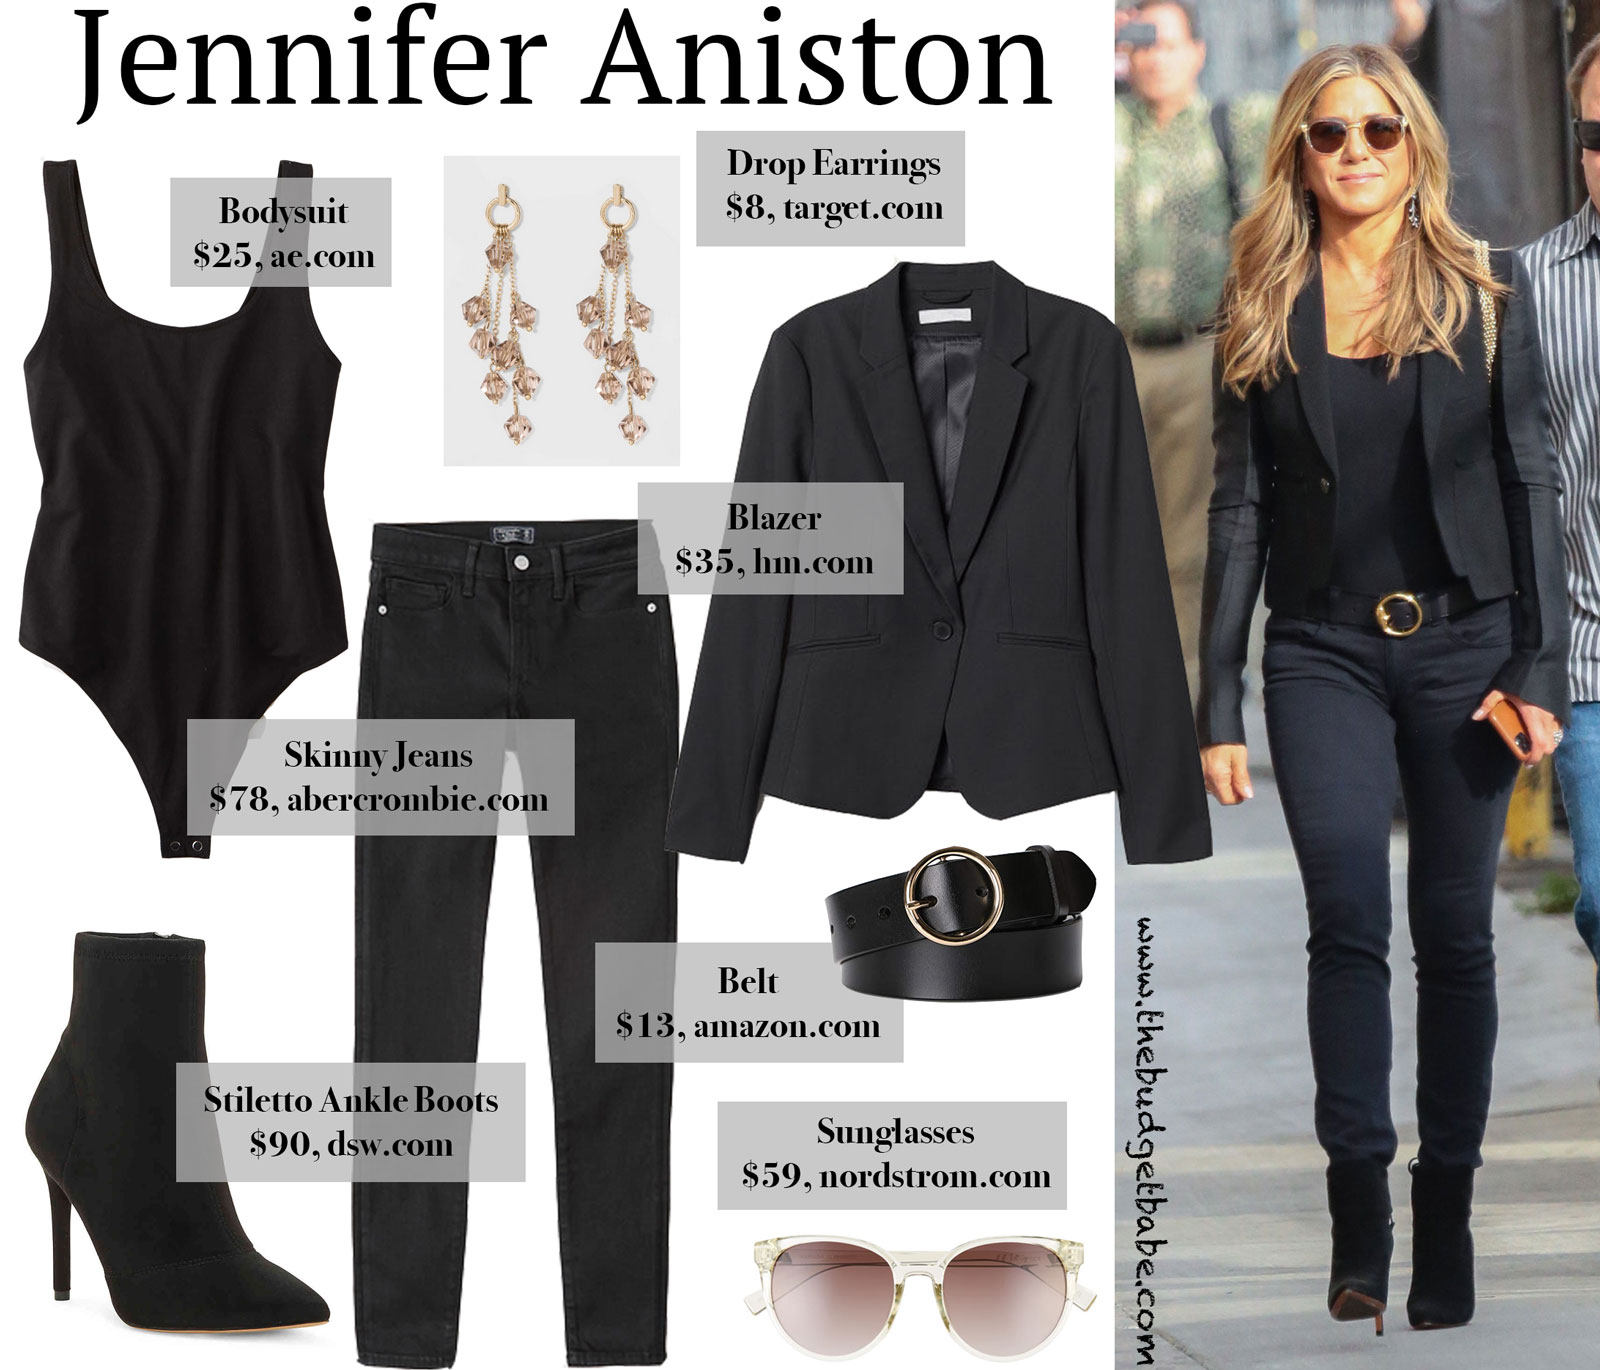 Jennifer Aniston All Black Look for Less